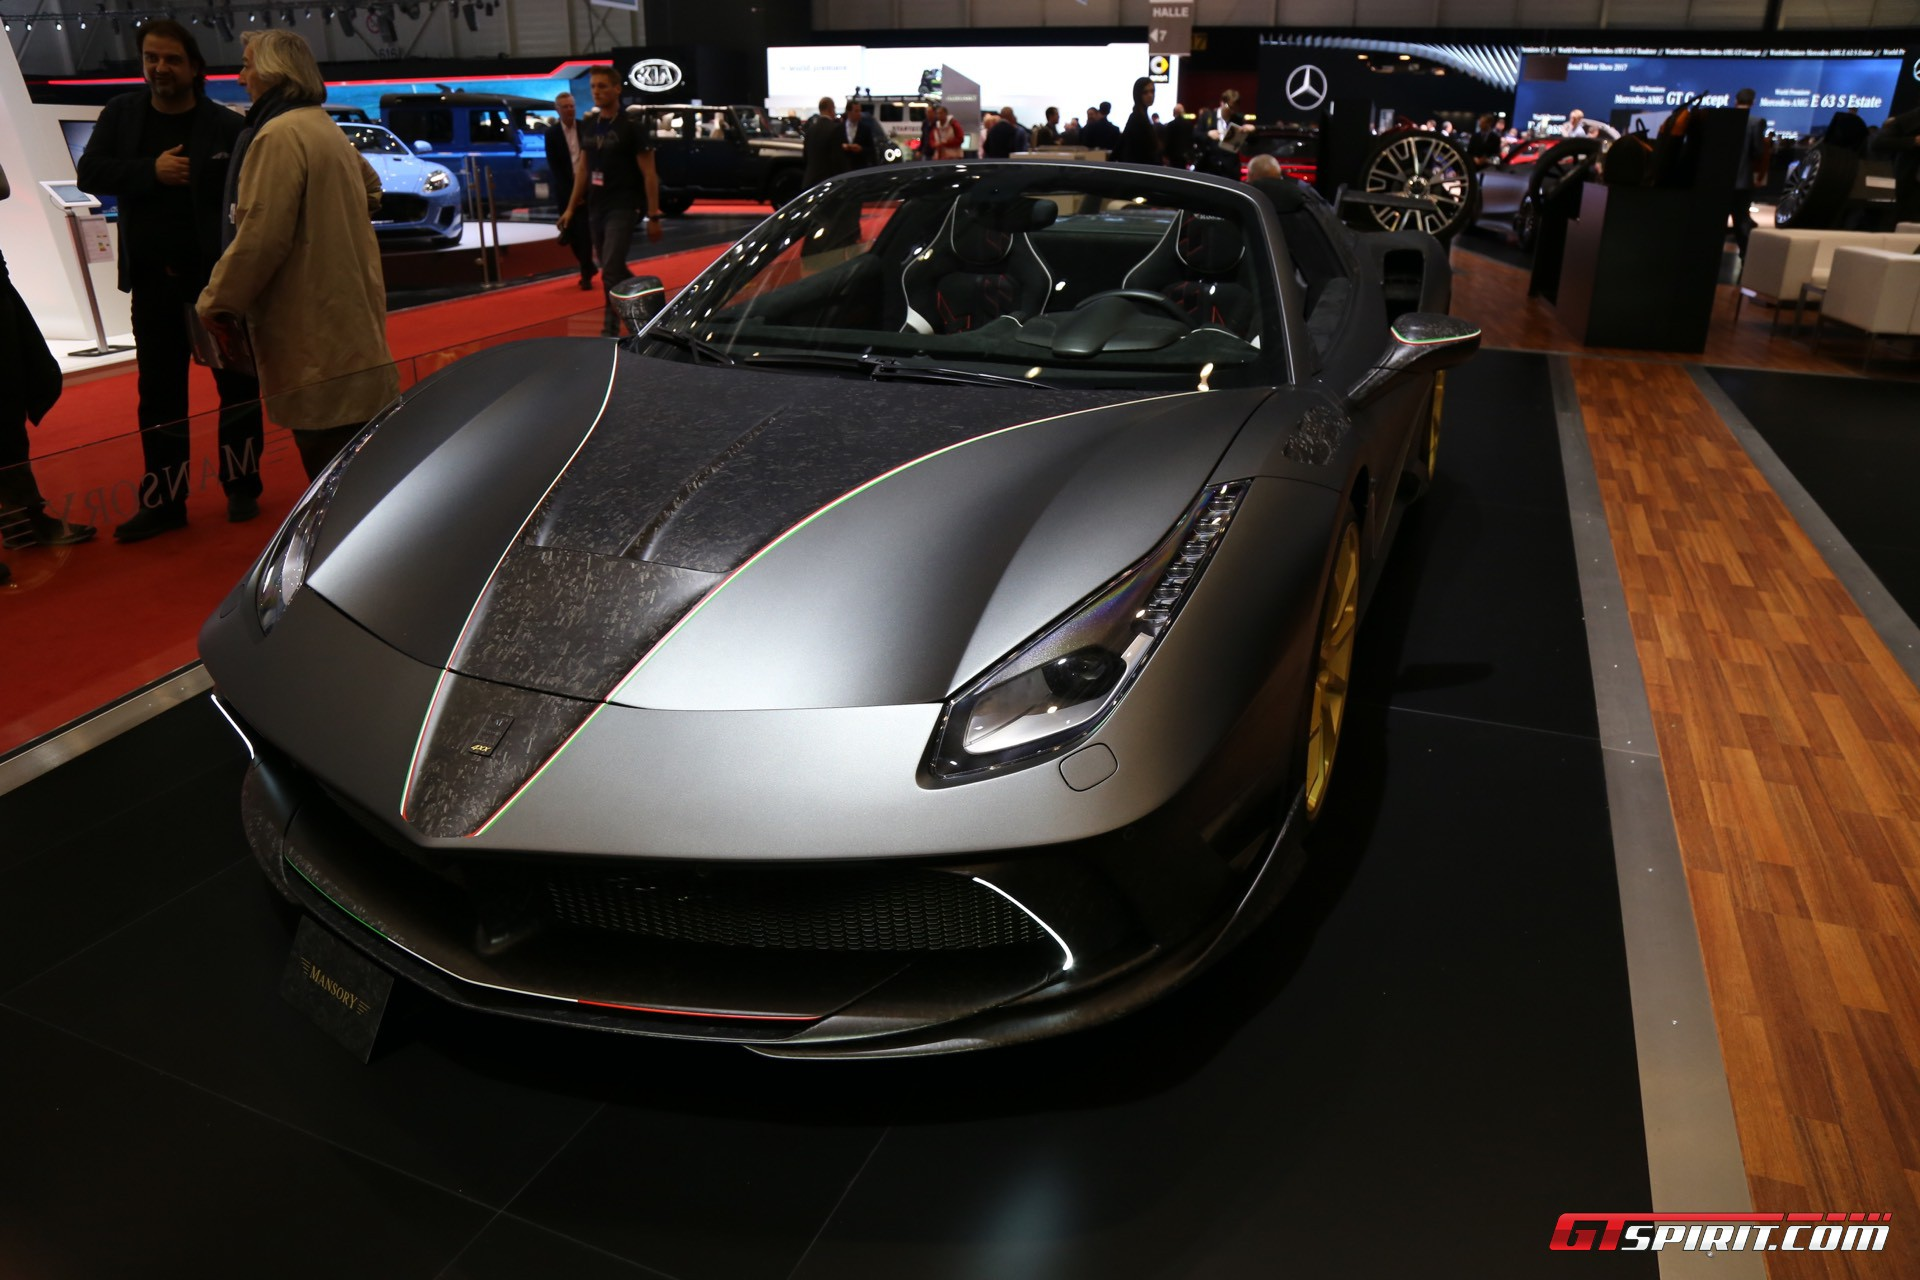 Mansory Ferrari at Geneva 201712